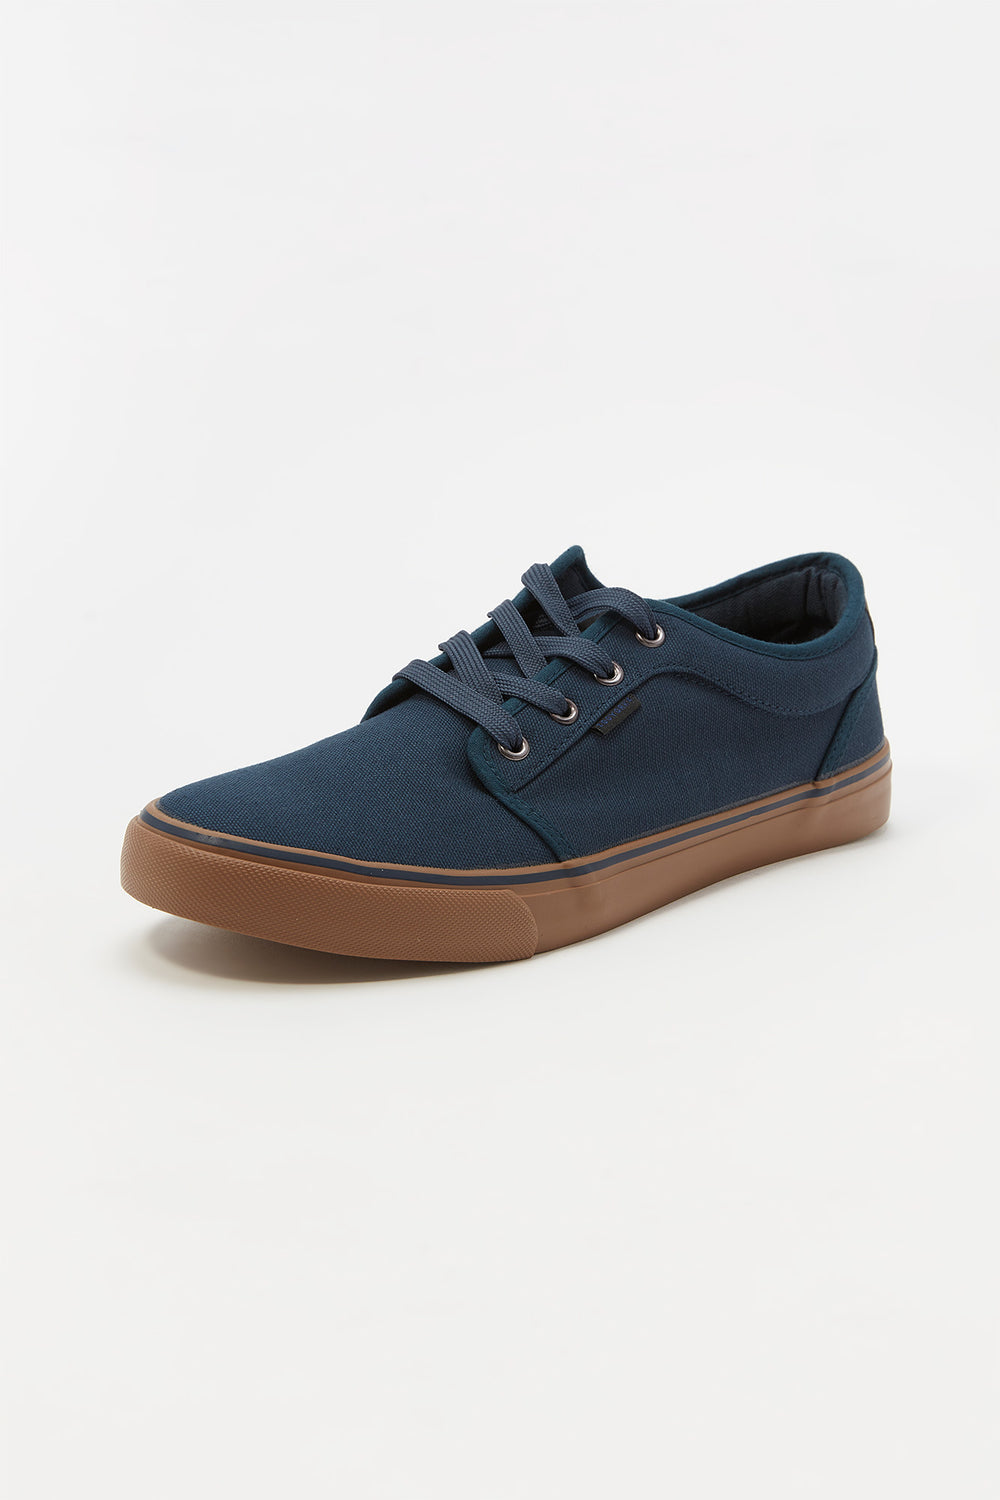 Zoo York Mens Canvas Skate Shoes Navy